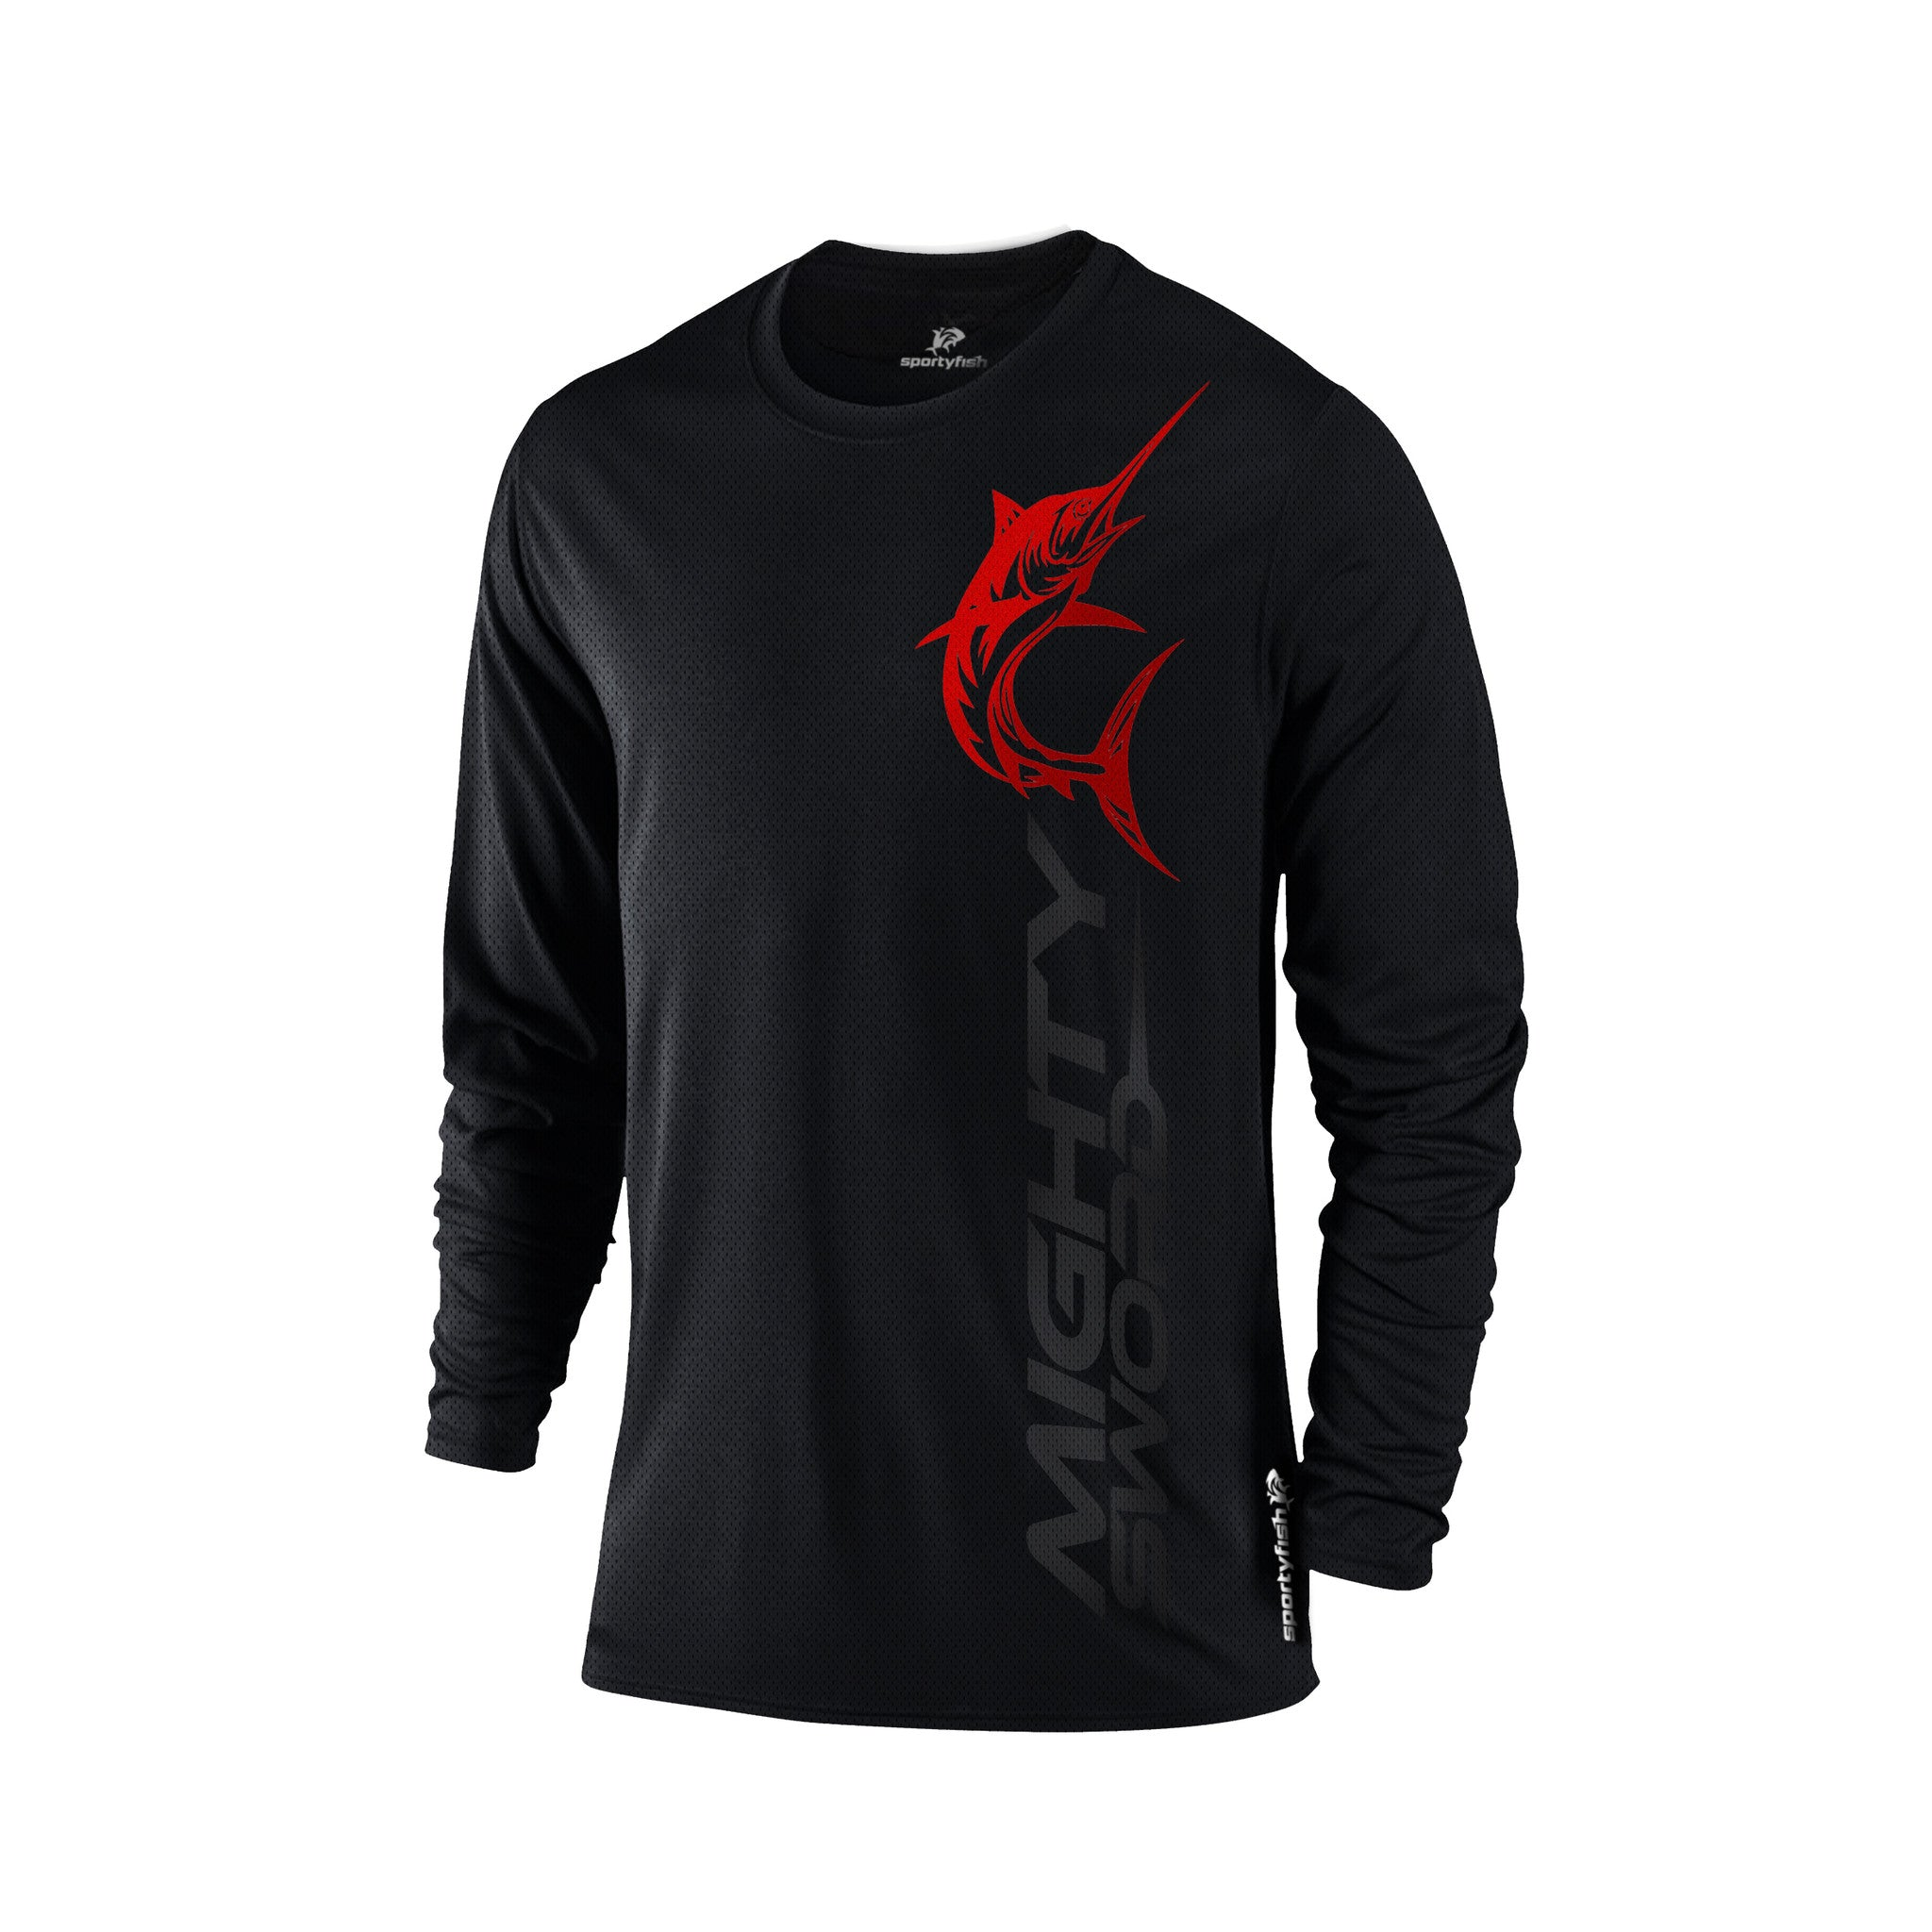 SportyFish Black Series Long-sleeves T-shirt(front view): Black Marlin